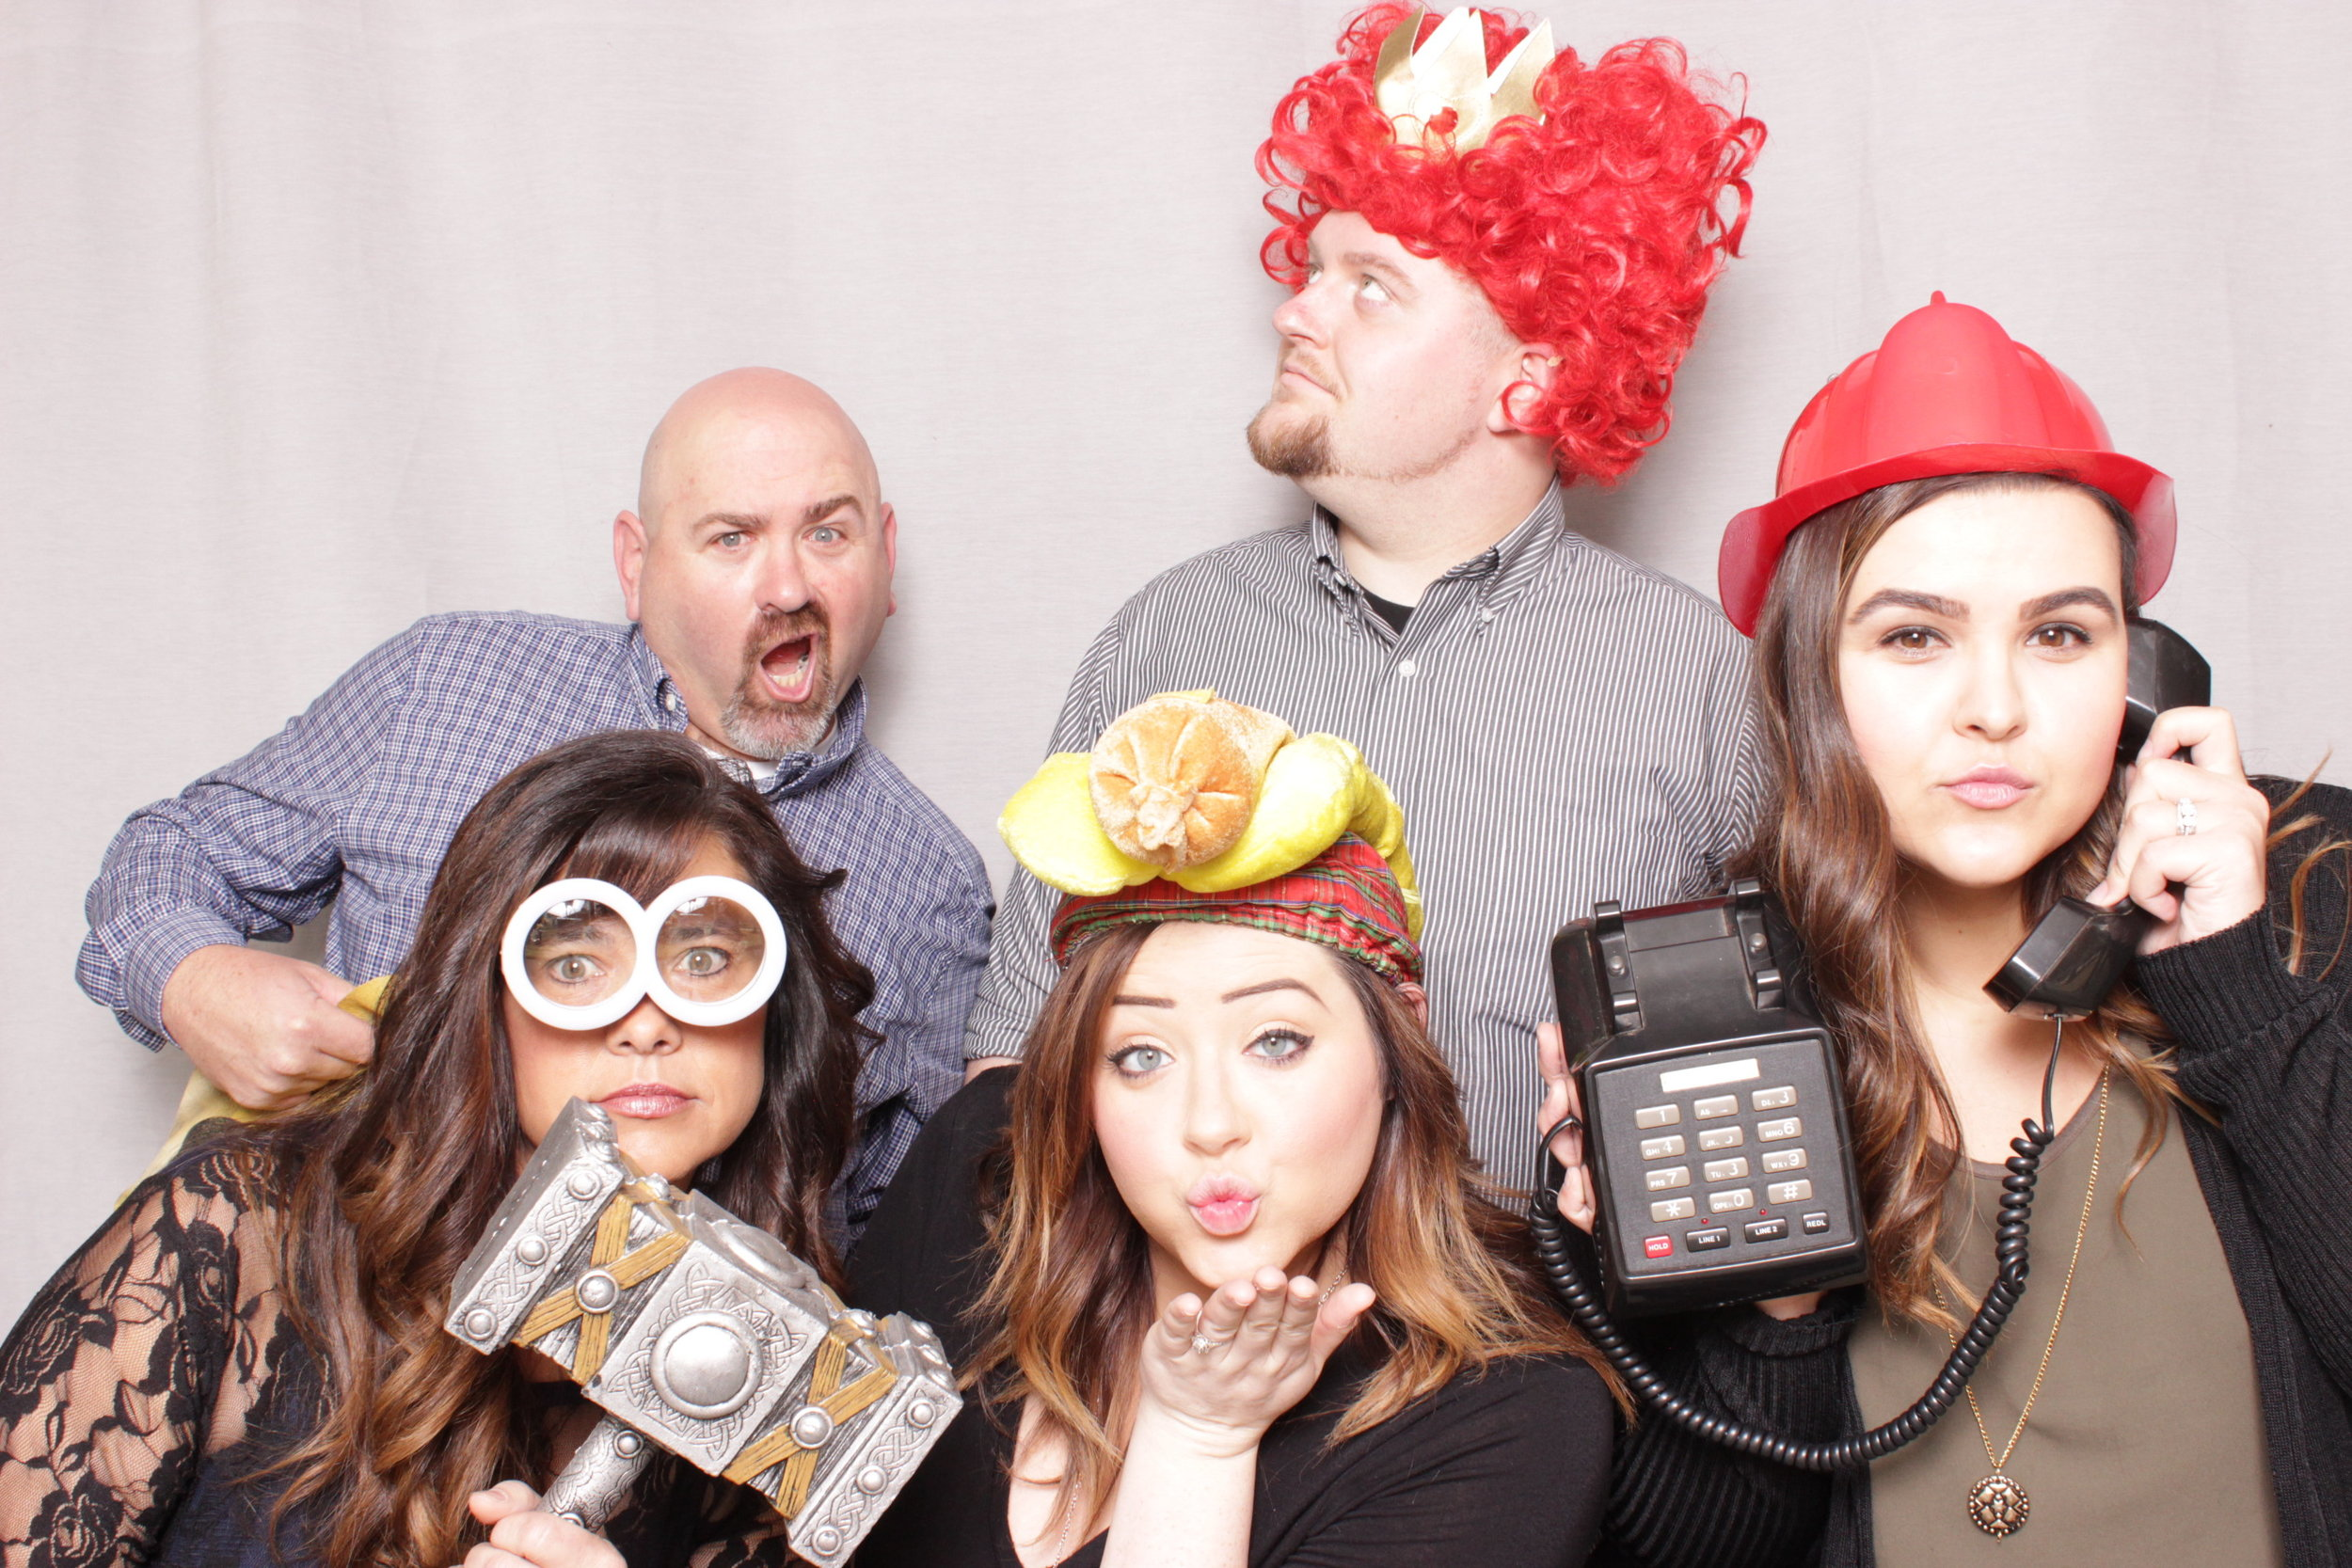 Chico-photo-booth-rental-hats-included